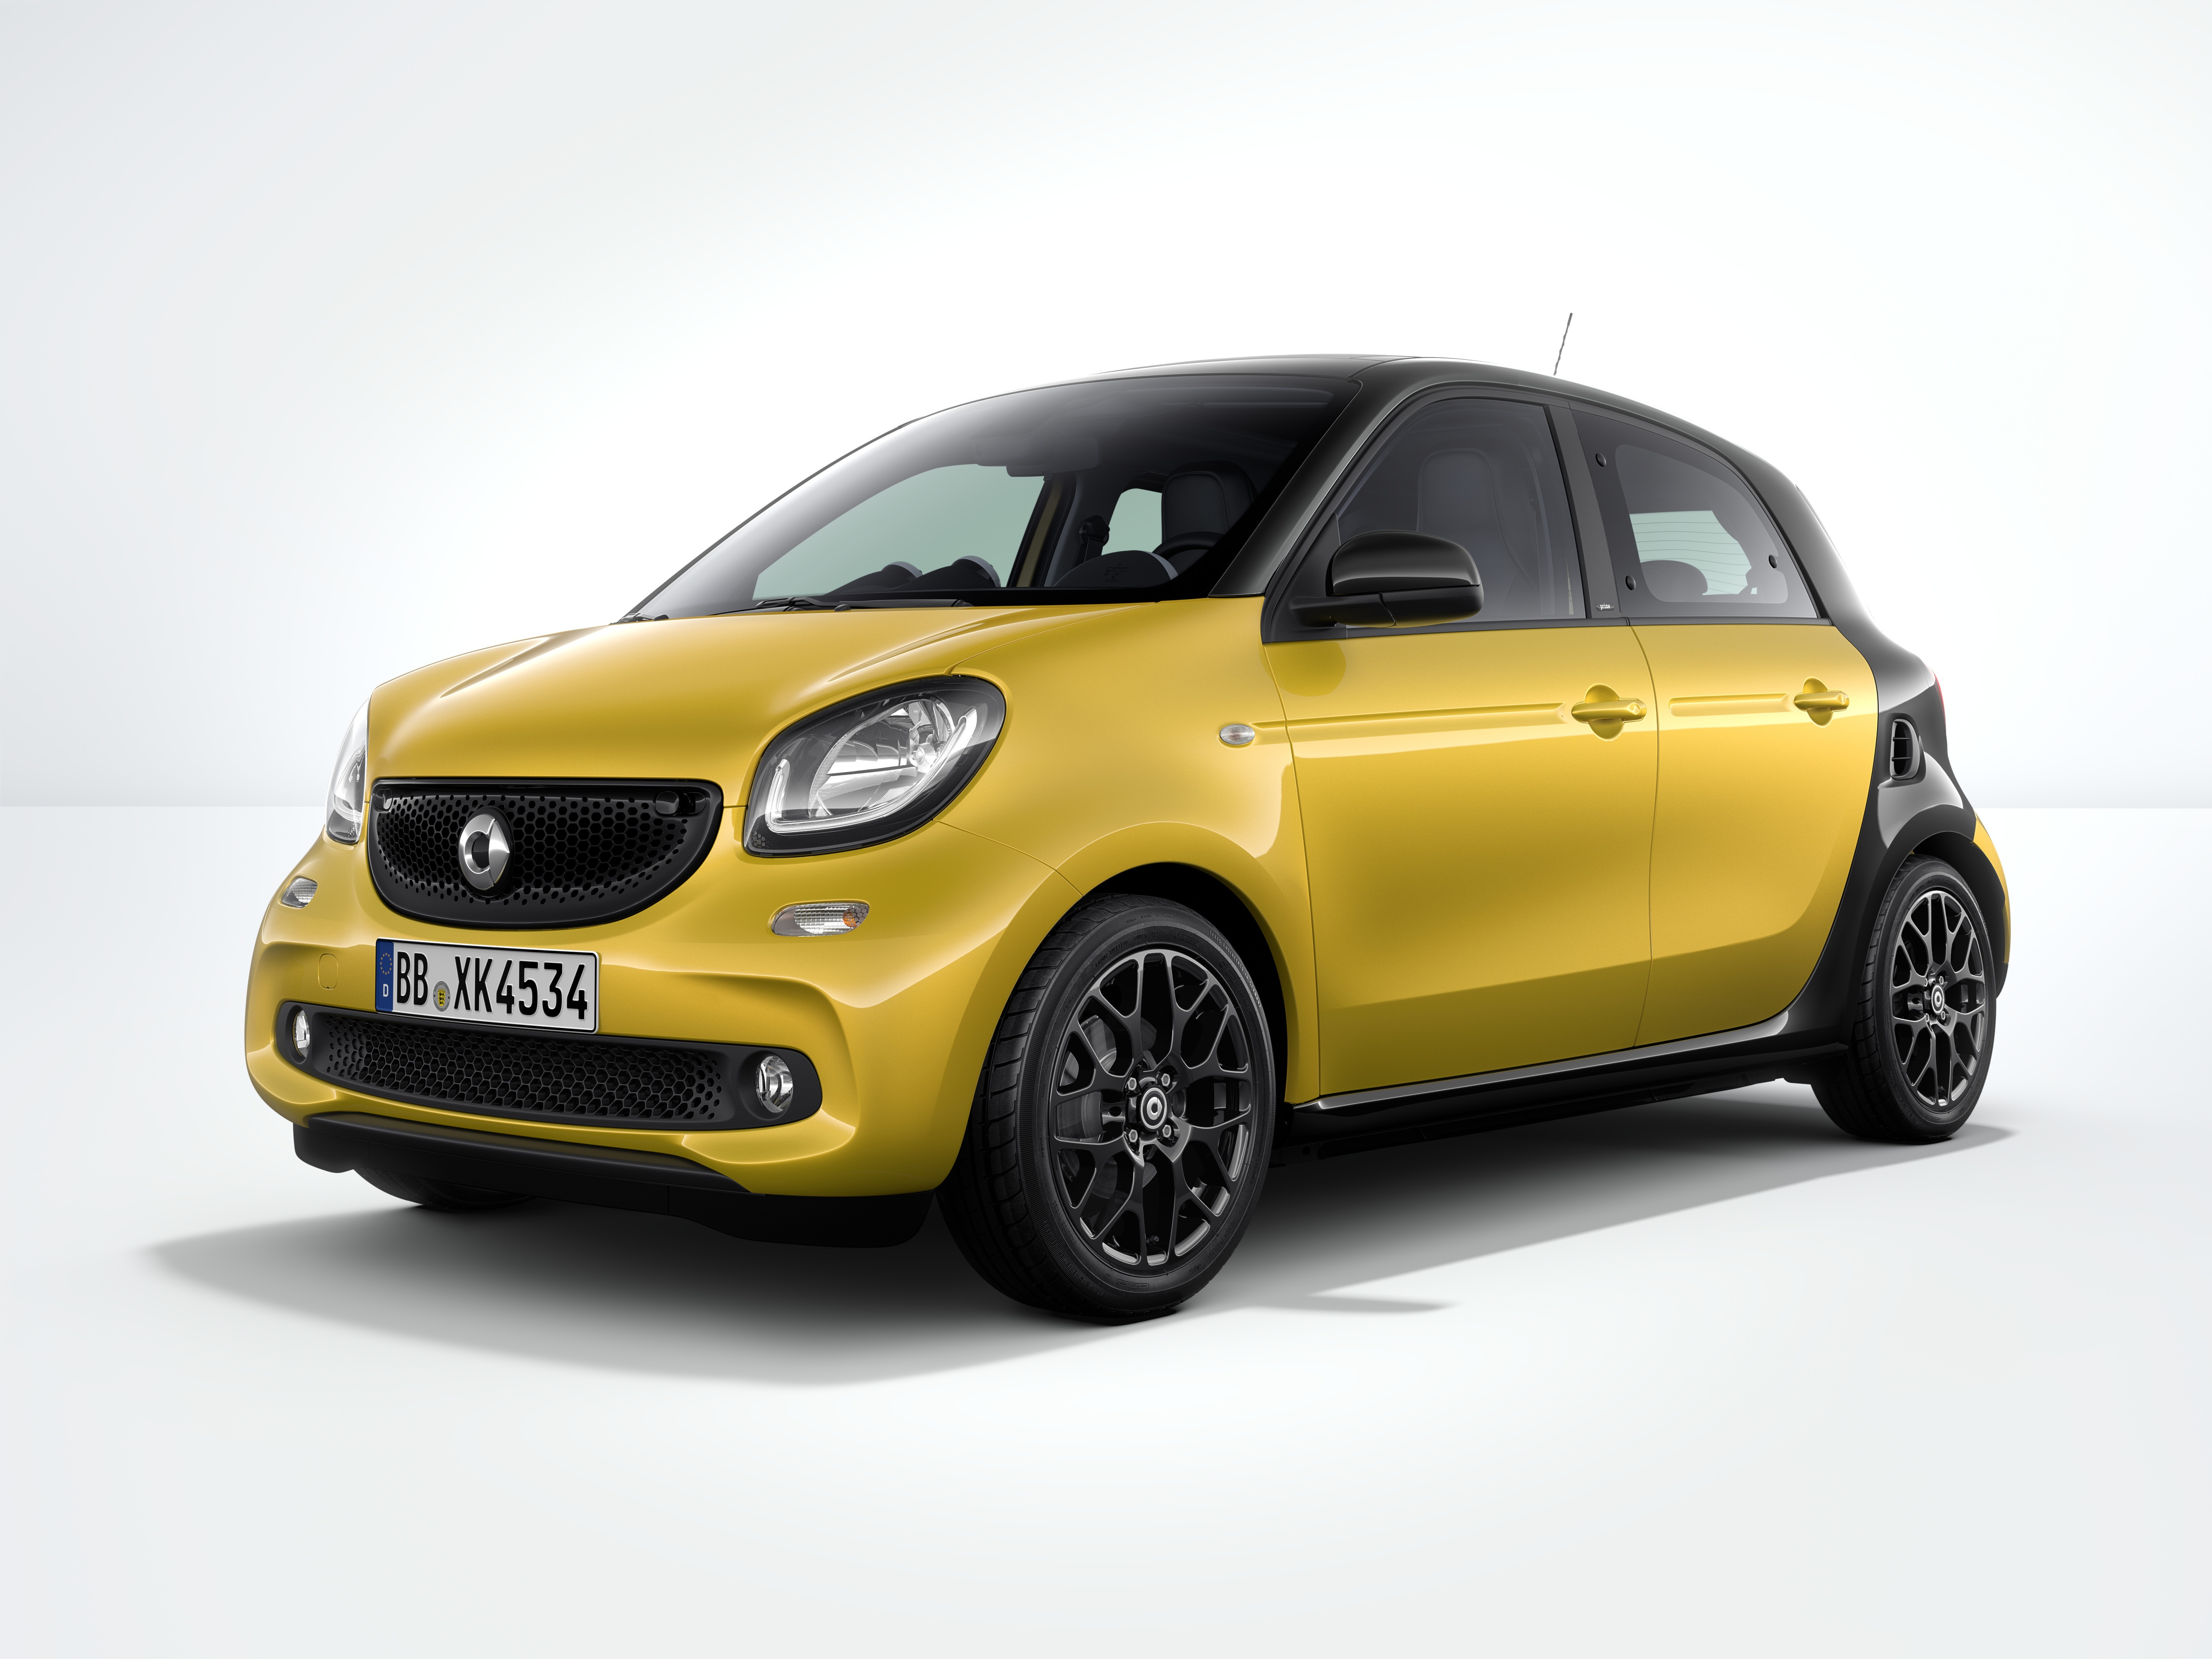 smart forfour launch edition - עיצוב